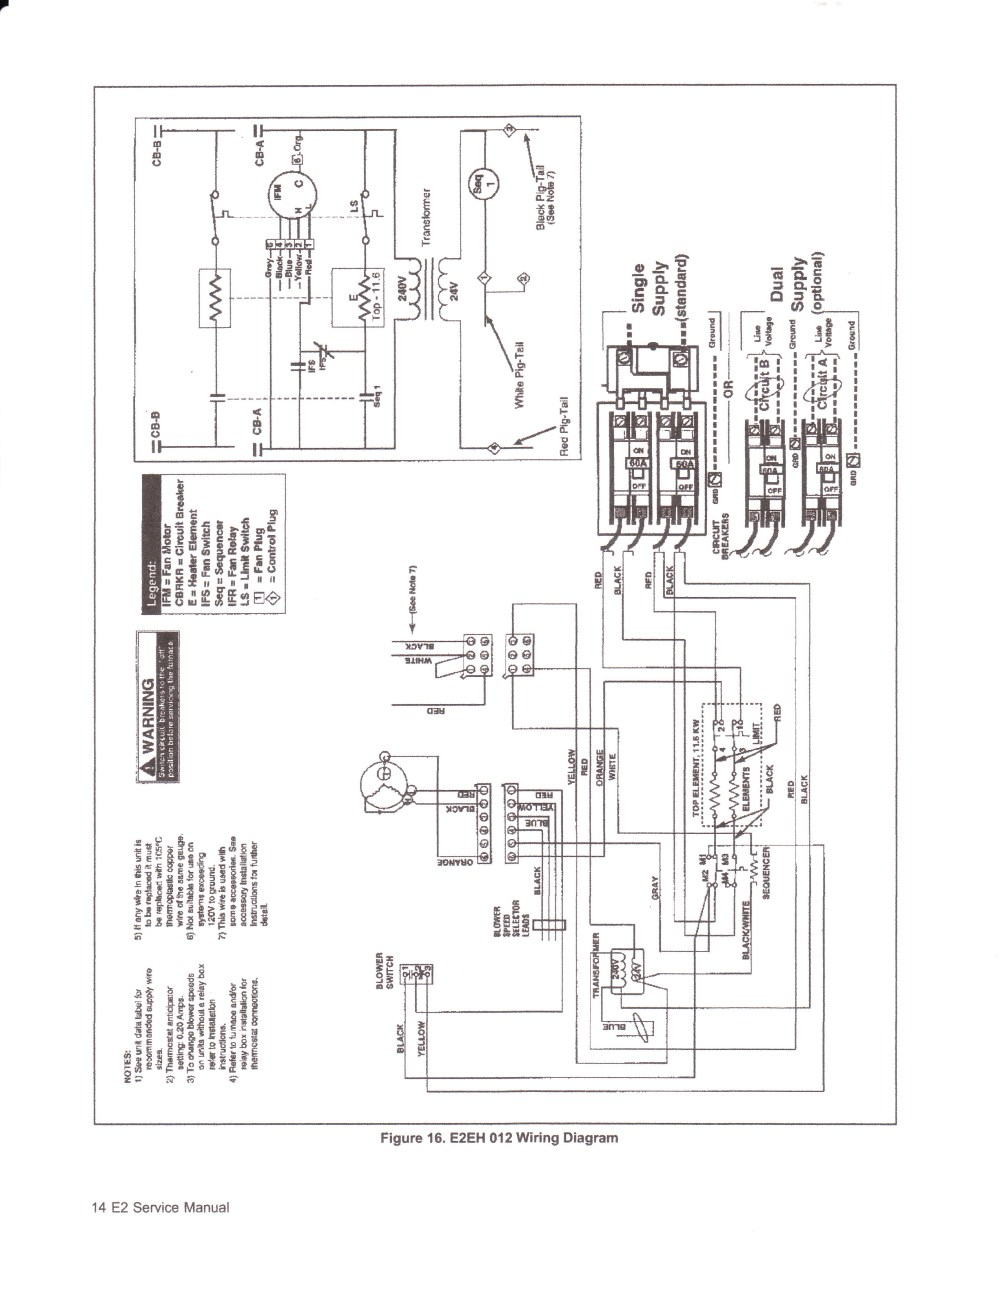 medium resolution of wiring diagram electric furnace wiring diagram used wiring diagram 8 best images of goodman electric furnace wiring